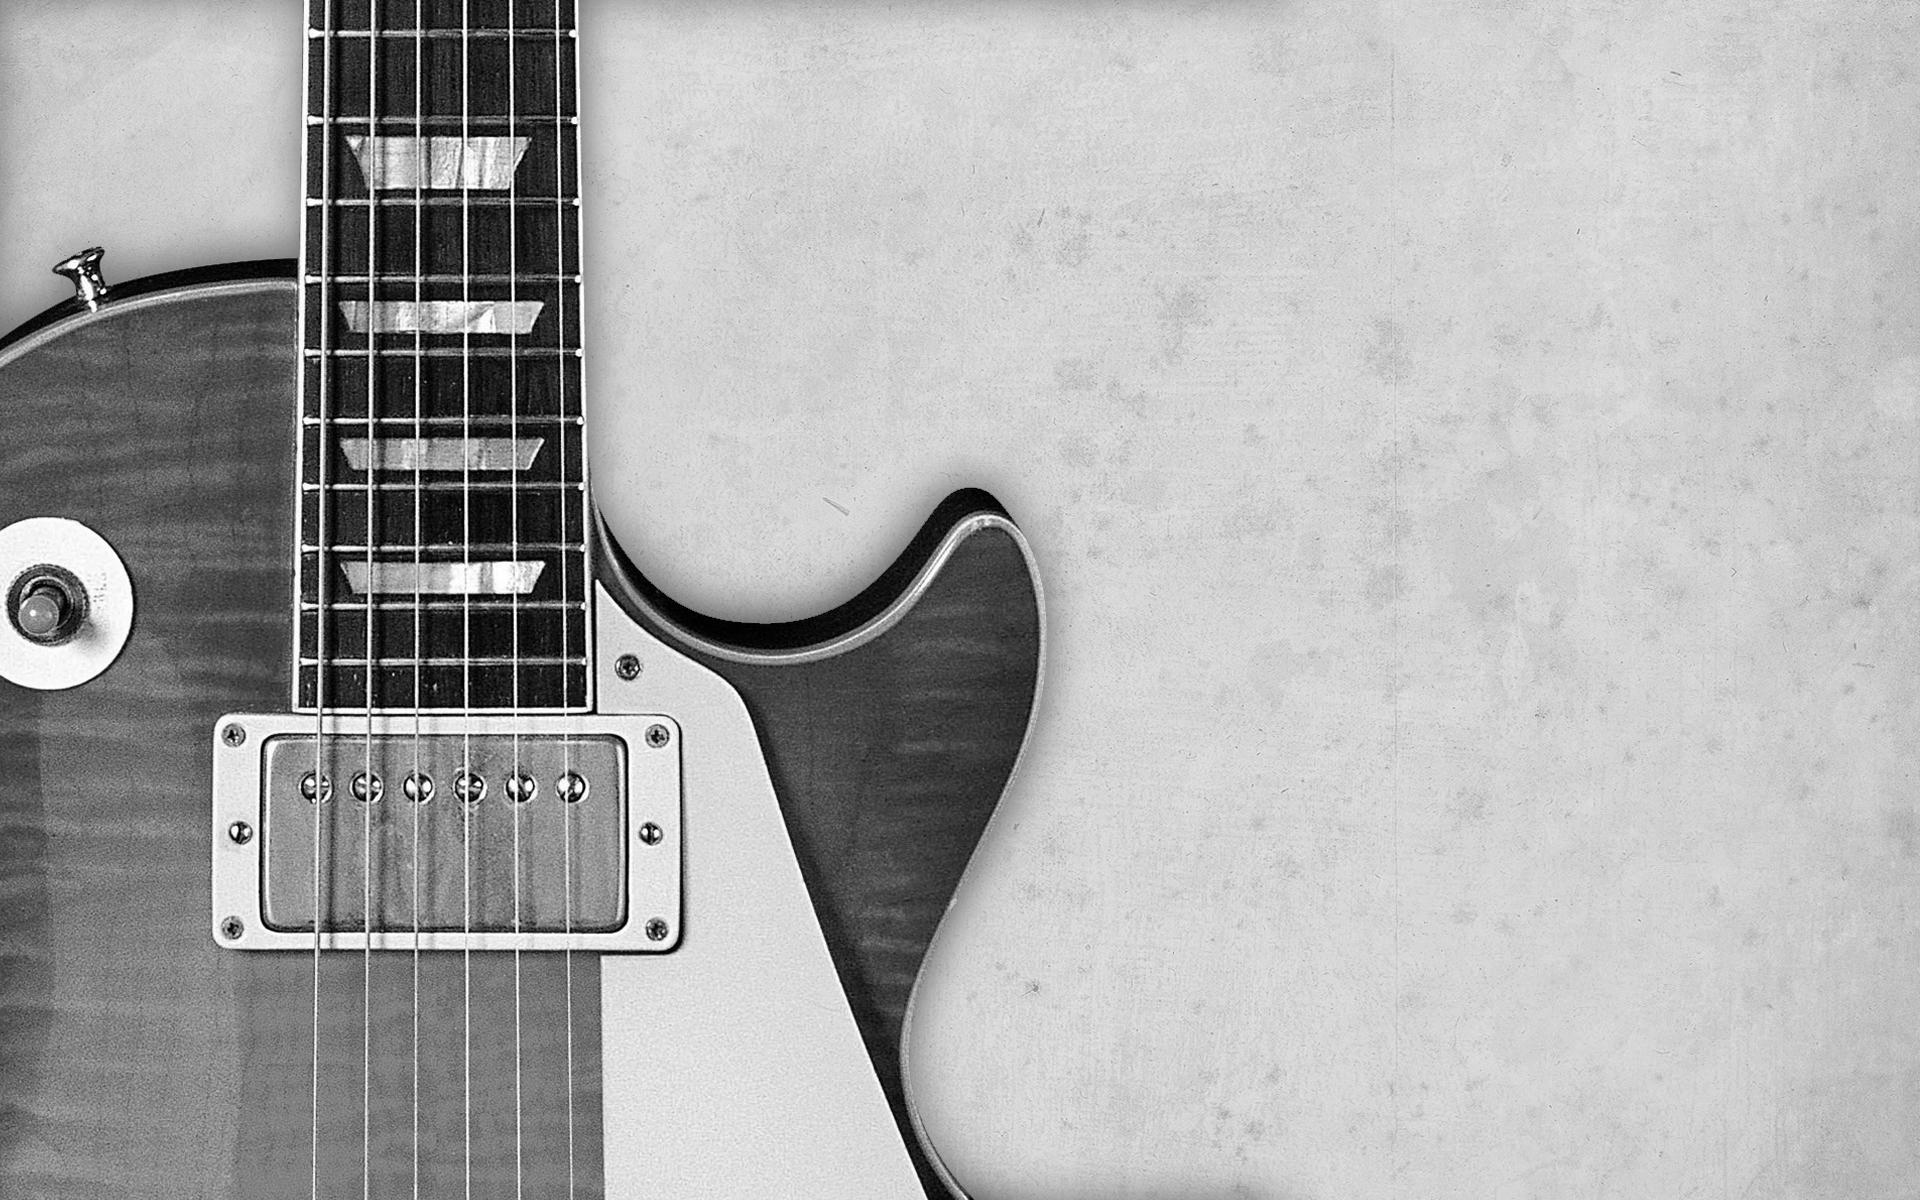 Image gallery for high resolution guitar wallpapers 1920x1200